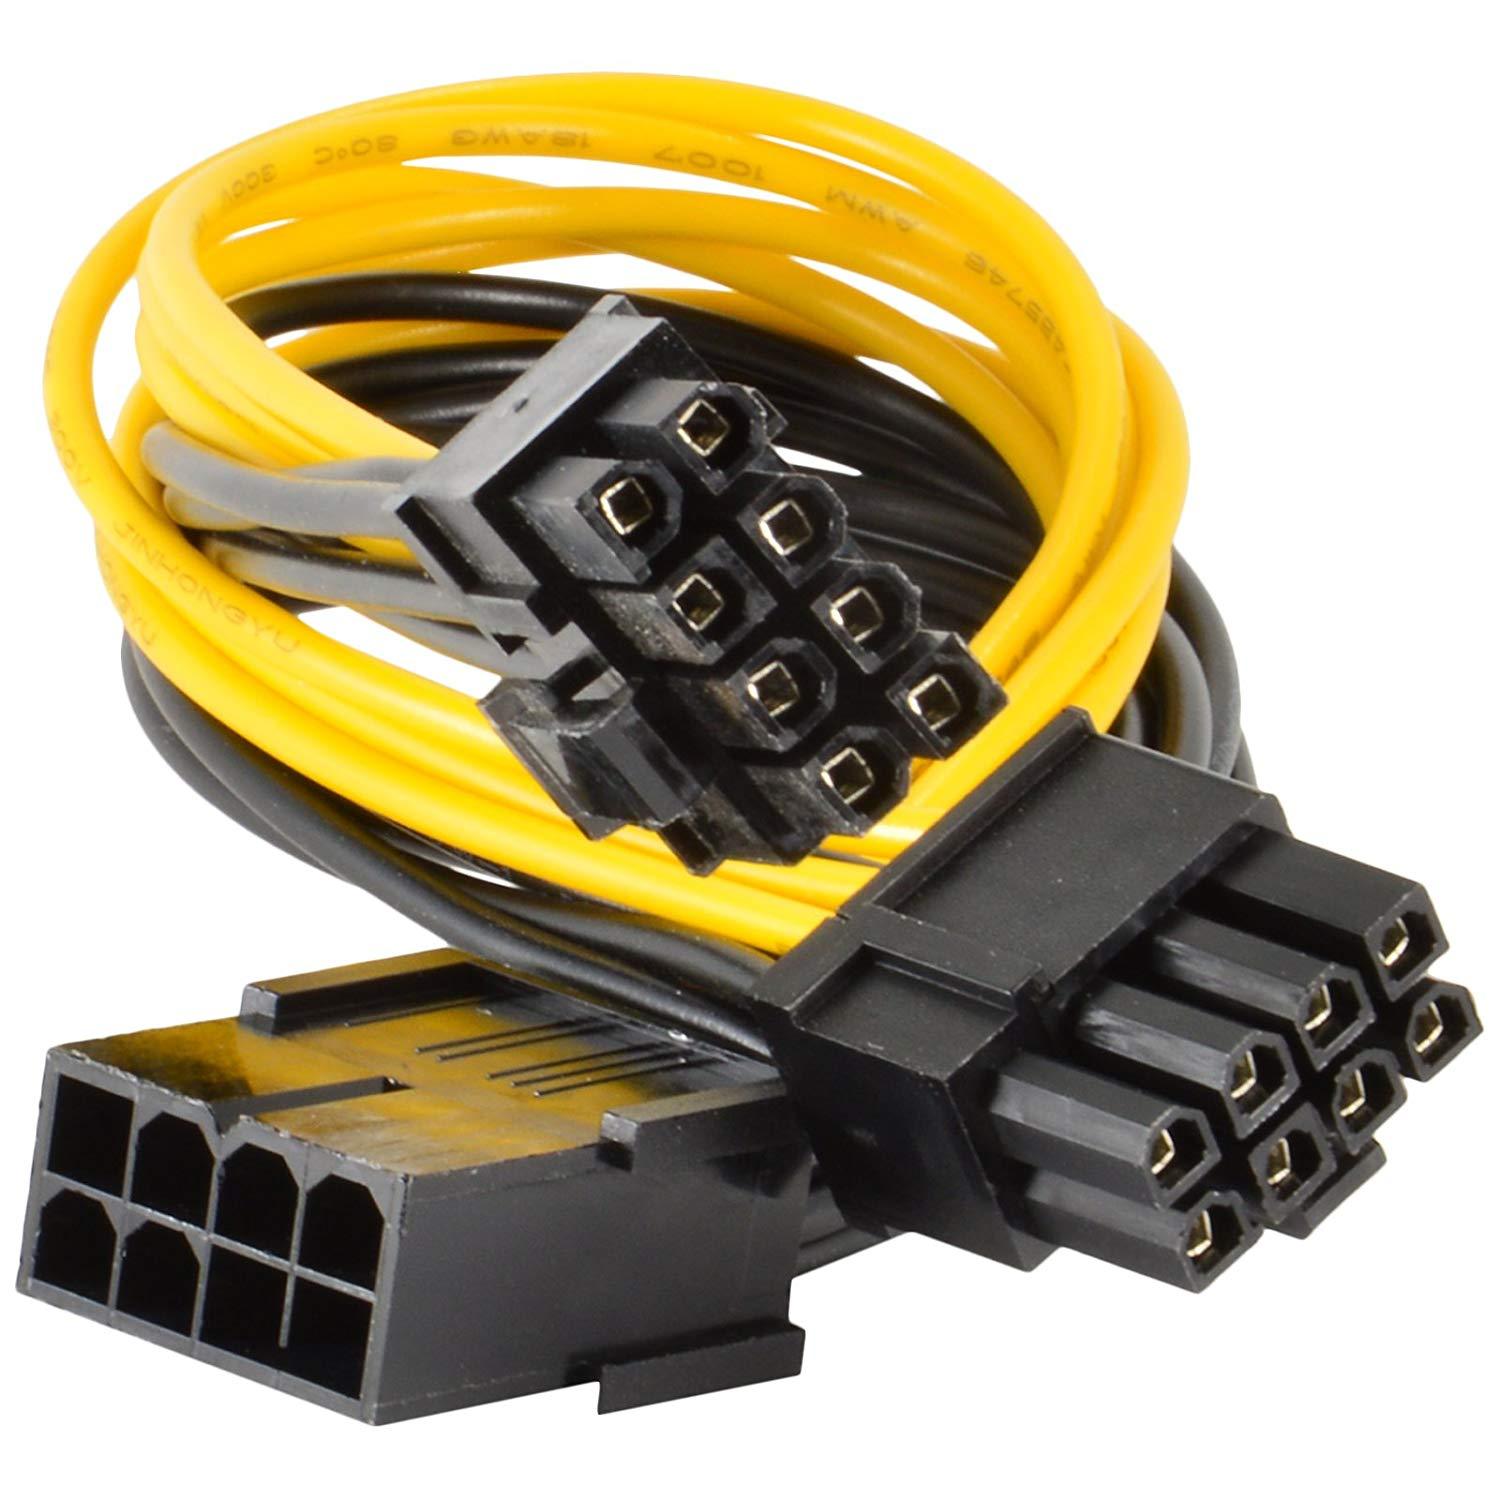 JacobsParts PCI Express Power Splitter Cable 8-pin to 2 x 6+2-pin (6-pin/8-pin) 18 AWG (5-Pack)